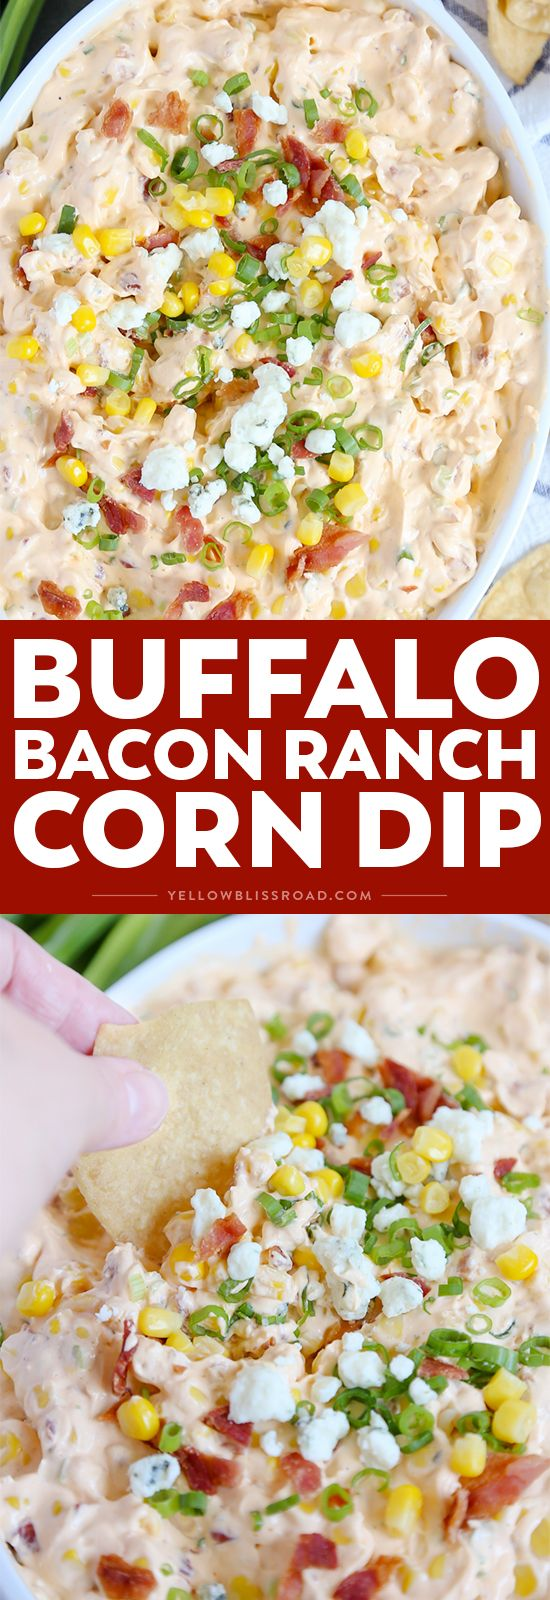 My Buffalo Bacon Ranch Corn Dip is a real crowd pleaser, with spicy buffalo wing sauce, sweet corn, tangy blue cheese and creamy ranch!